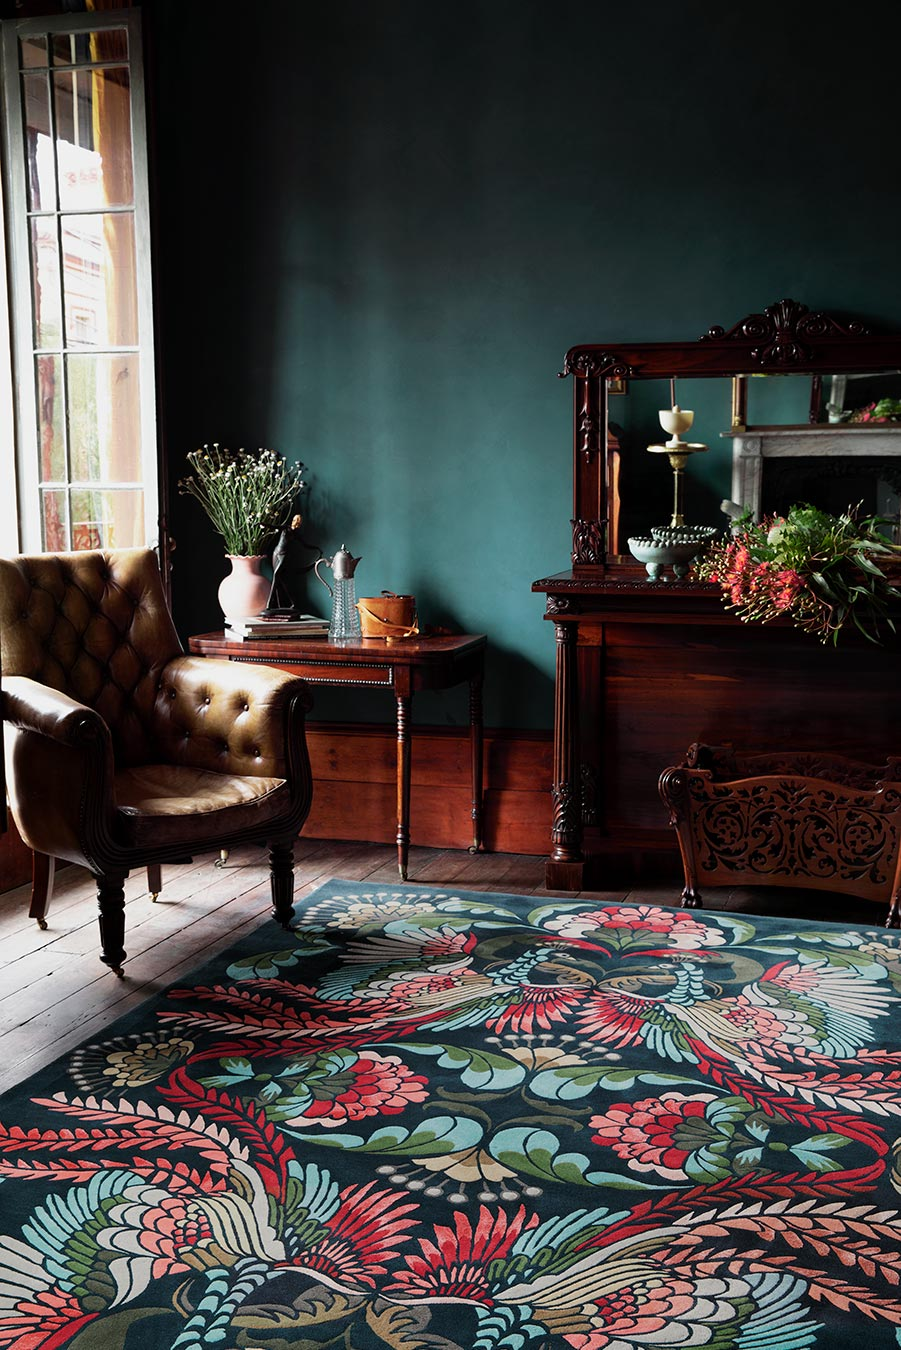 living room image of art nouveau Golden Peacock rug by house of heras